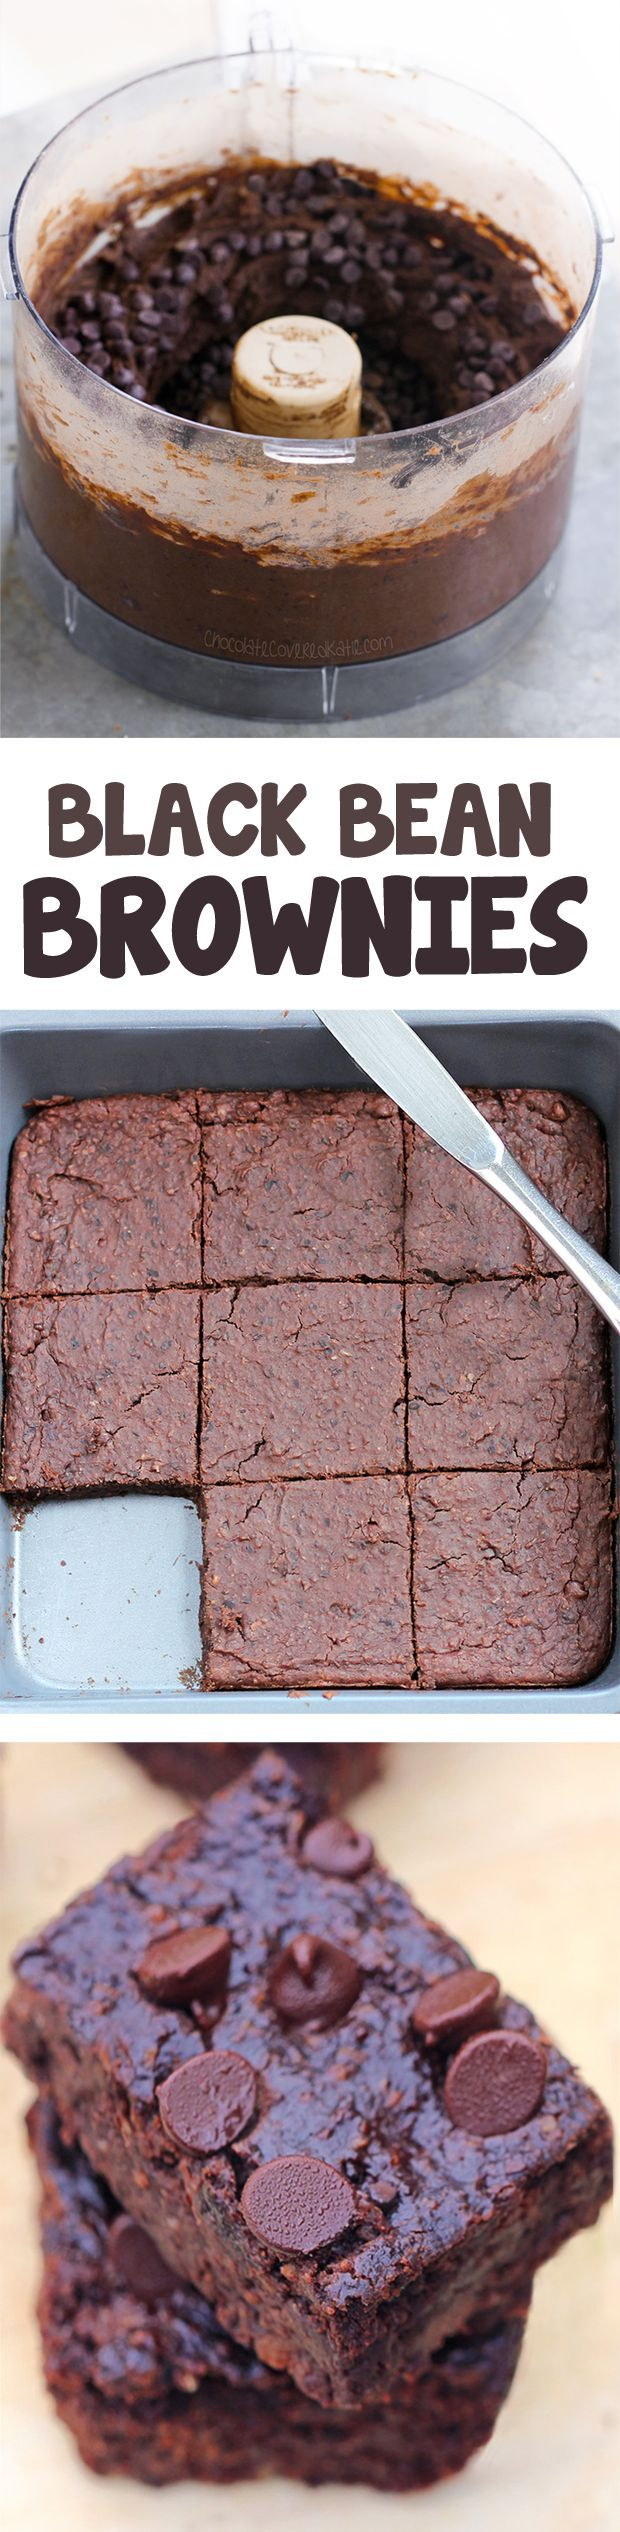 Flourless Black Bean Brownies - Rich, FUDGY better-than-boxed brownies, one of the most popular recipes I've EVER made!